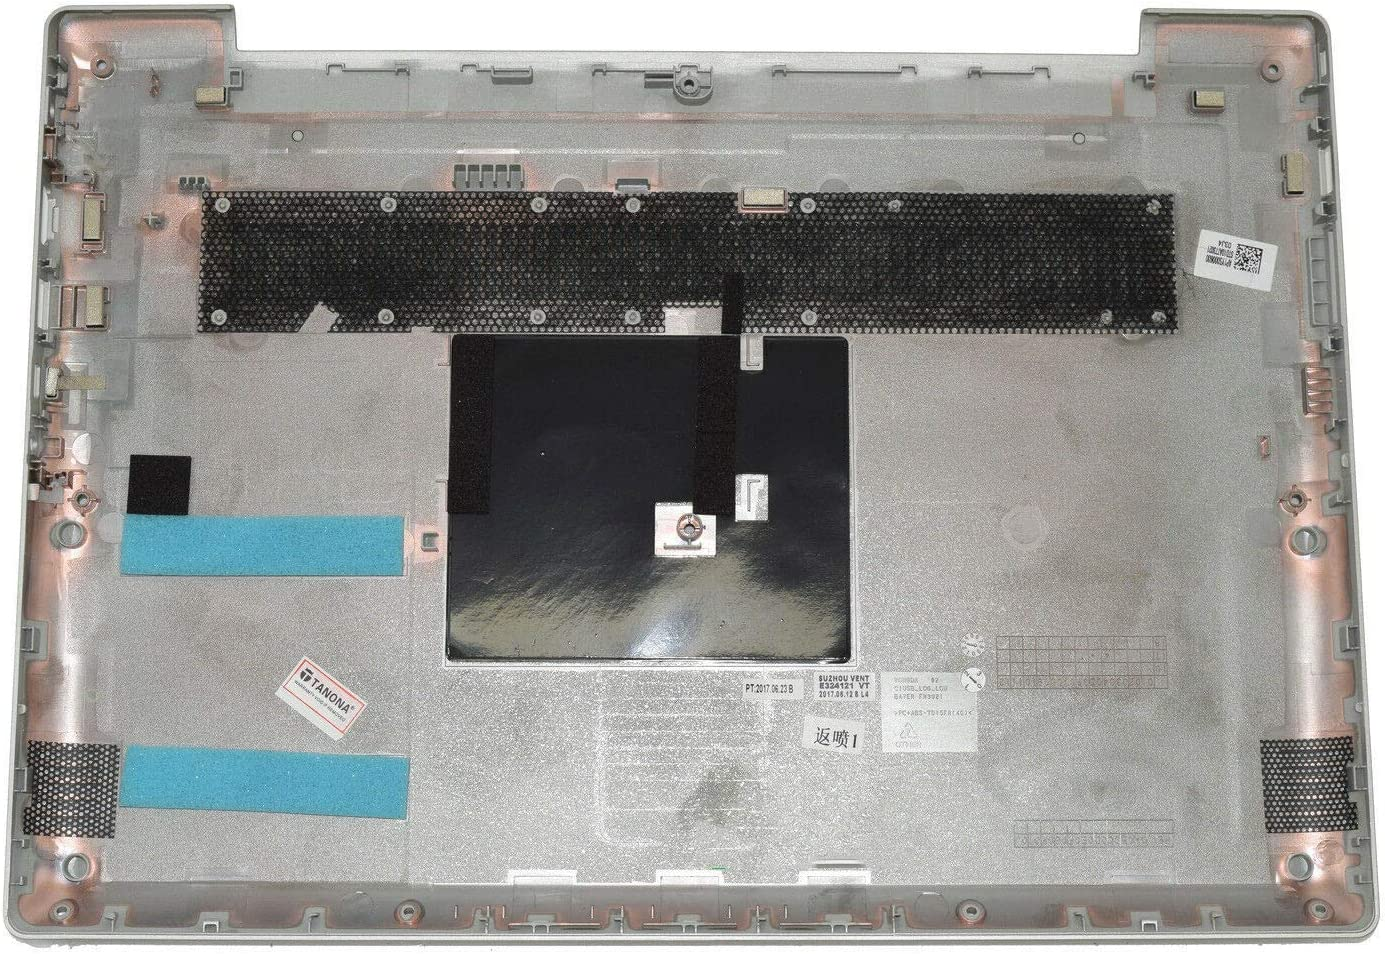 New Replacement for AP1YS000600 for Lenovo 320S-14ISK 320s-14IKB Bottom Case Base Cover Silver